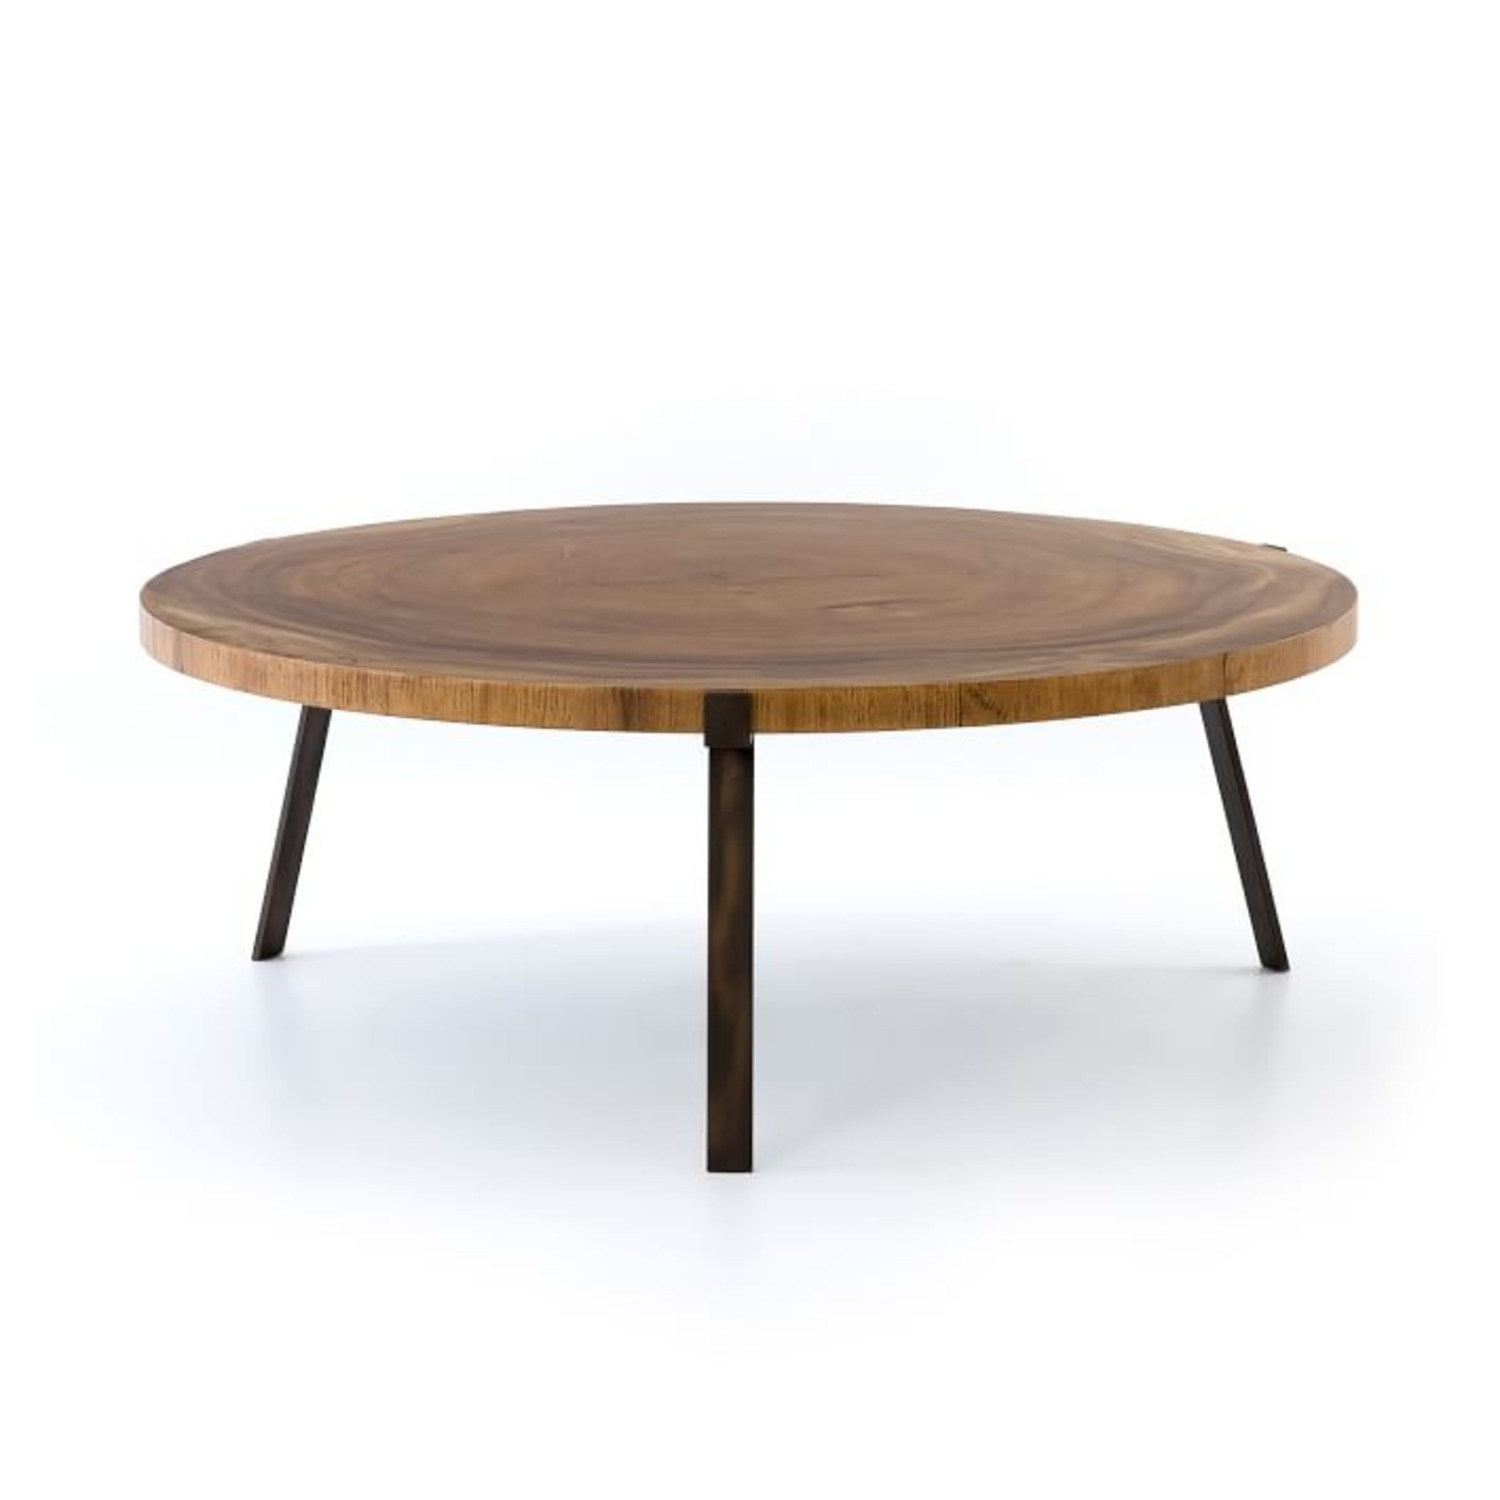 West Elm Natural Wood Round Coffee Table - image-3